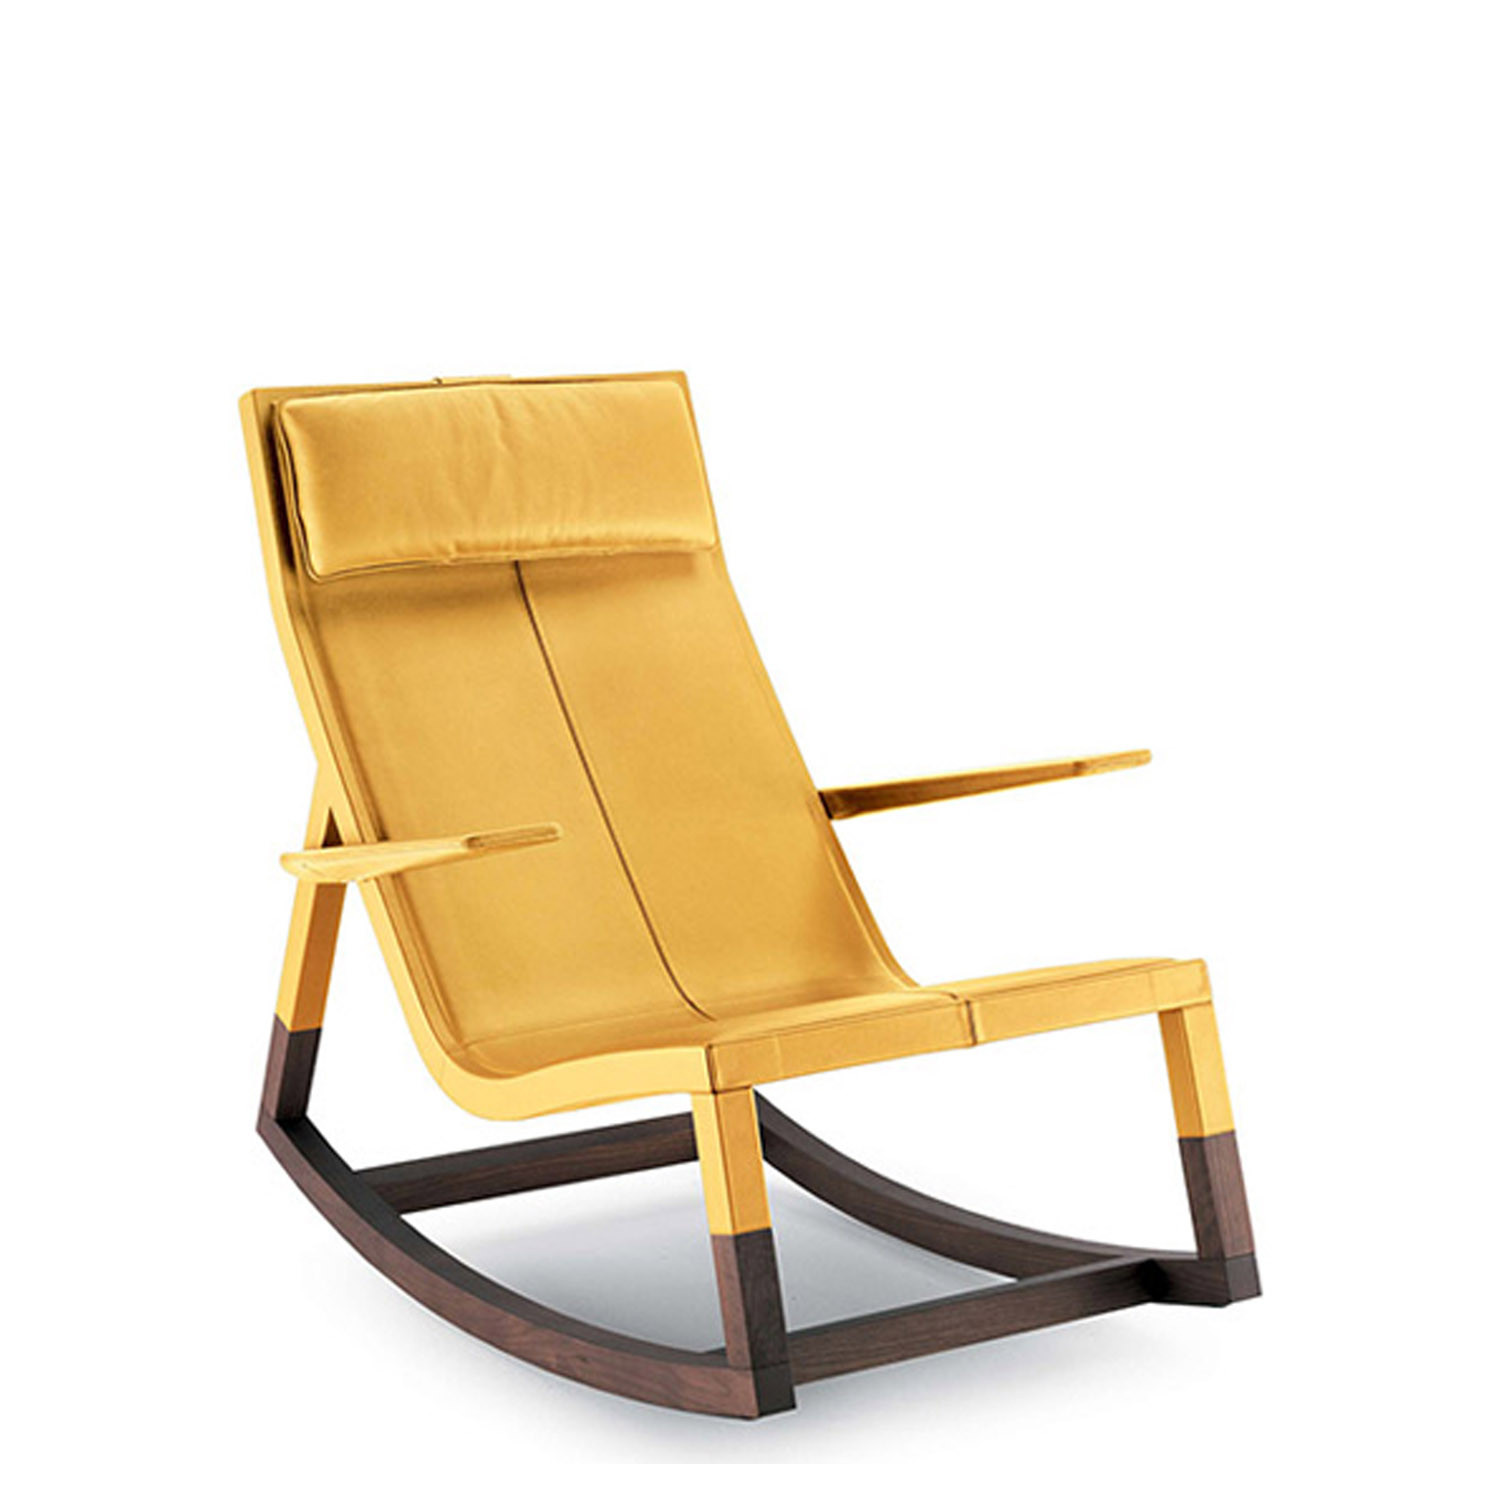 Modern Rocking Chair ~ Don do rocking chair modern chairs apres furniture